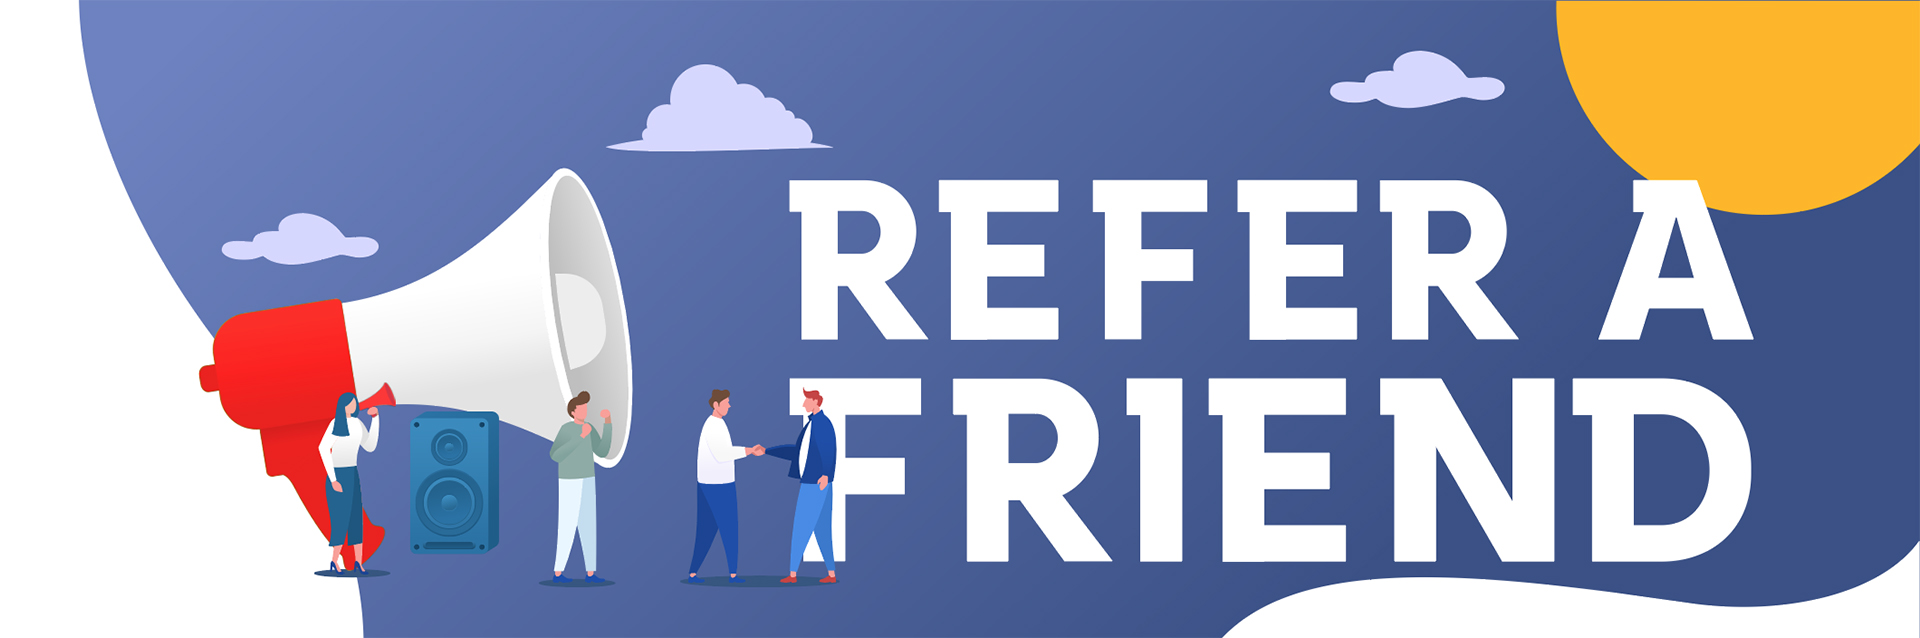 Referrals Image